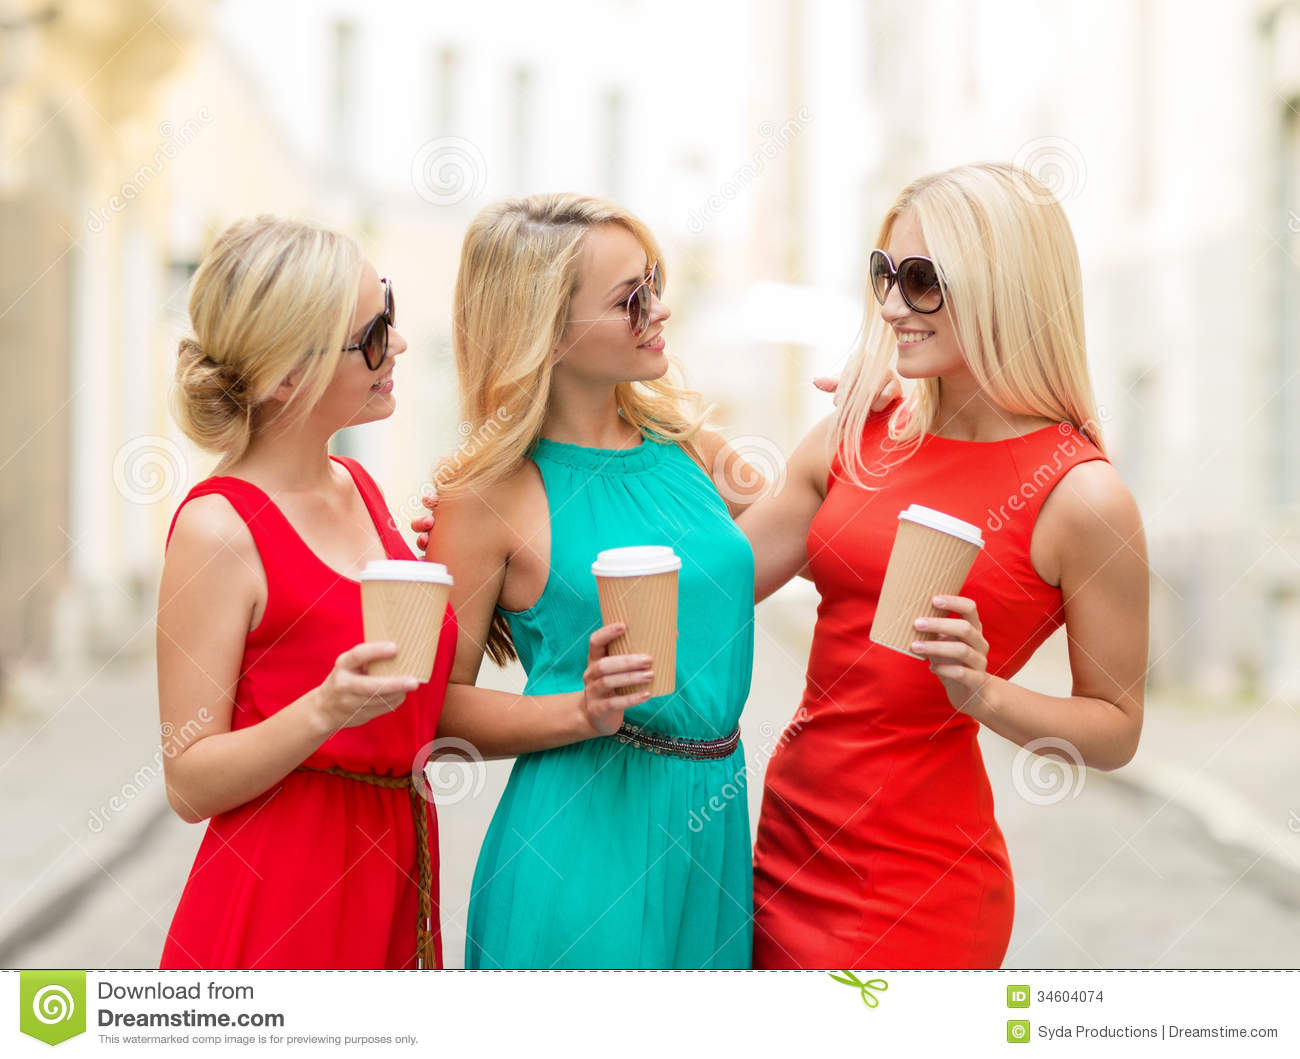 Girls Concept   Beautiful Women With Takeaway Coffee Cups In The City